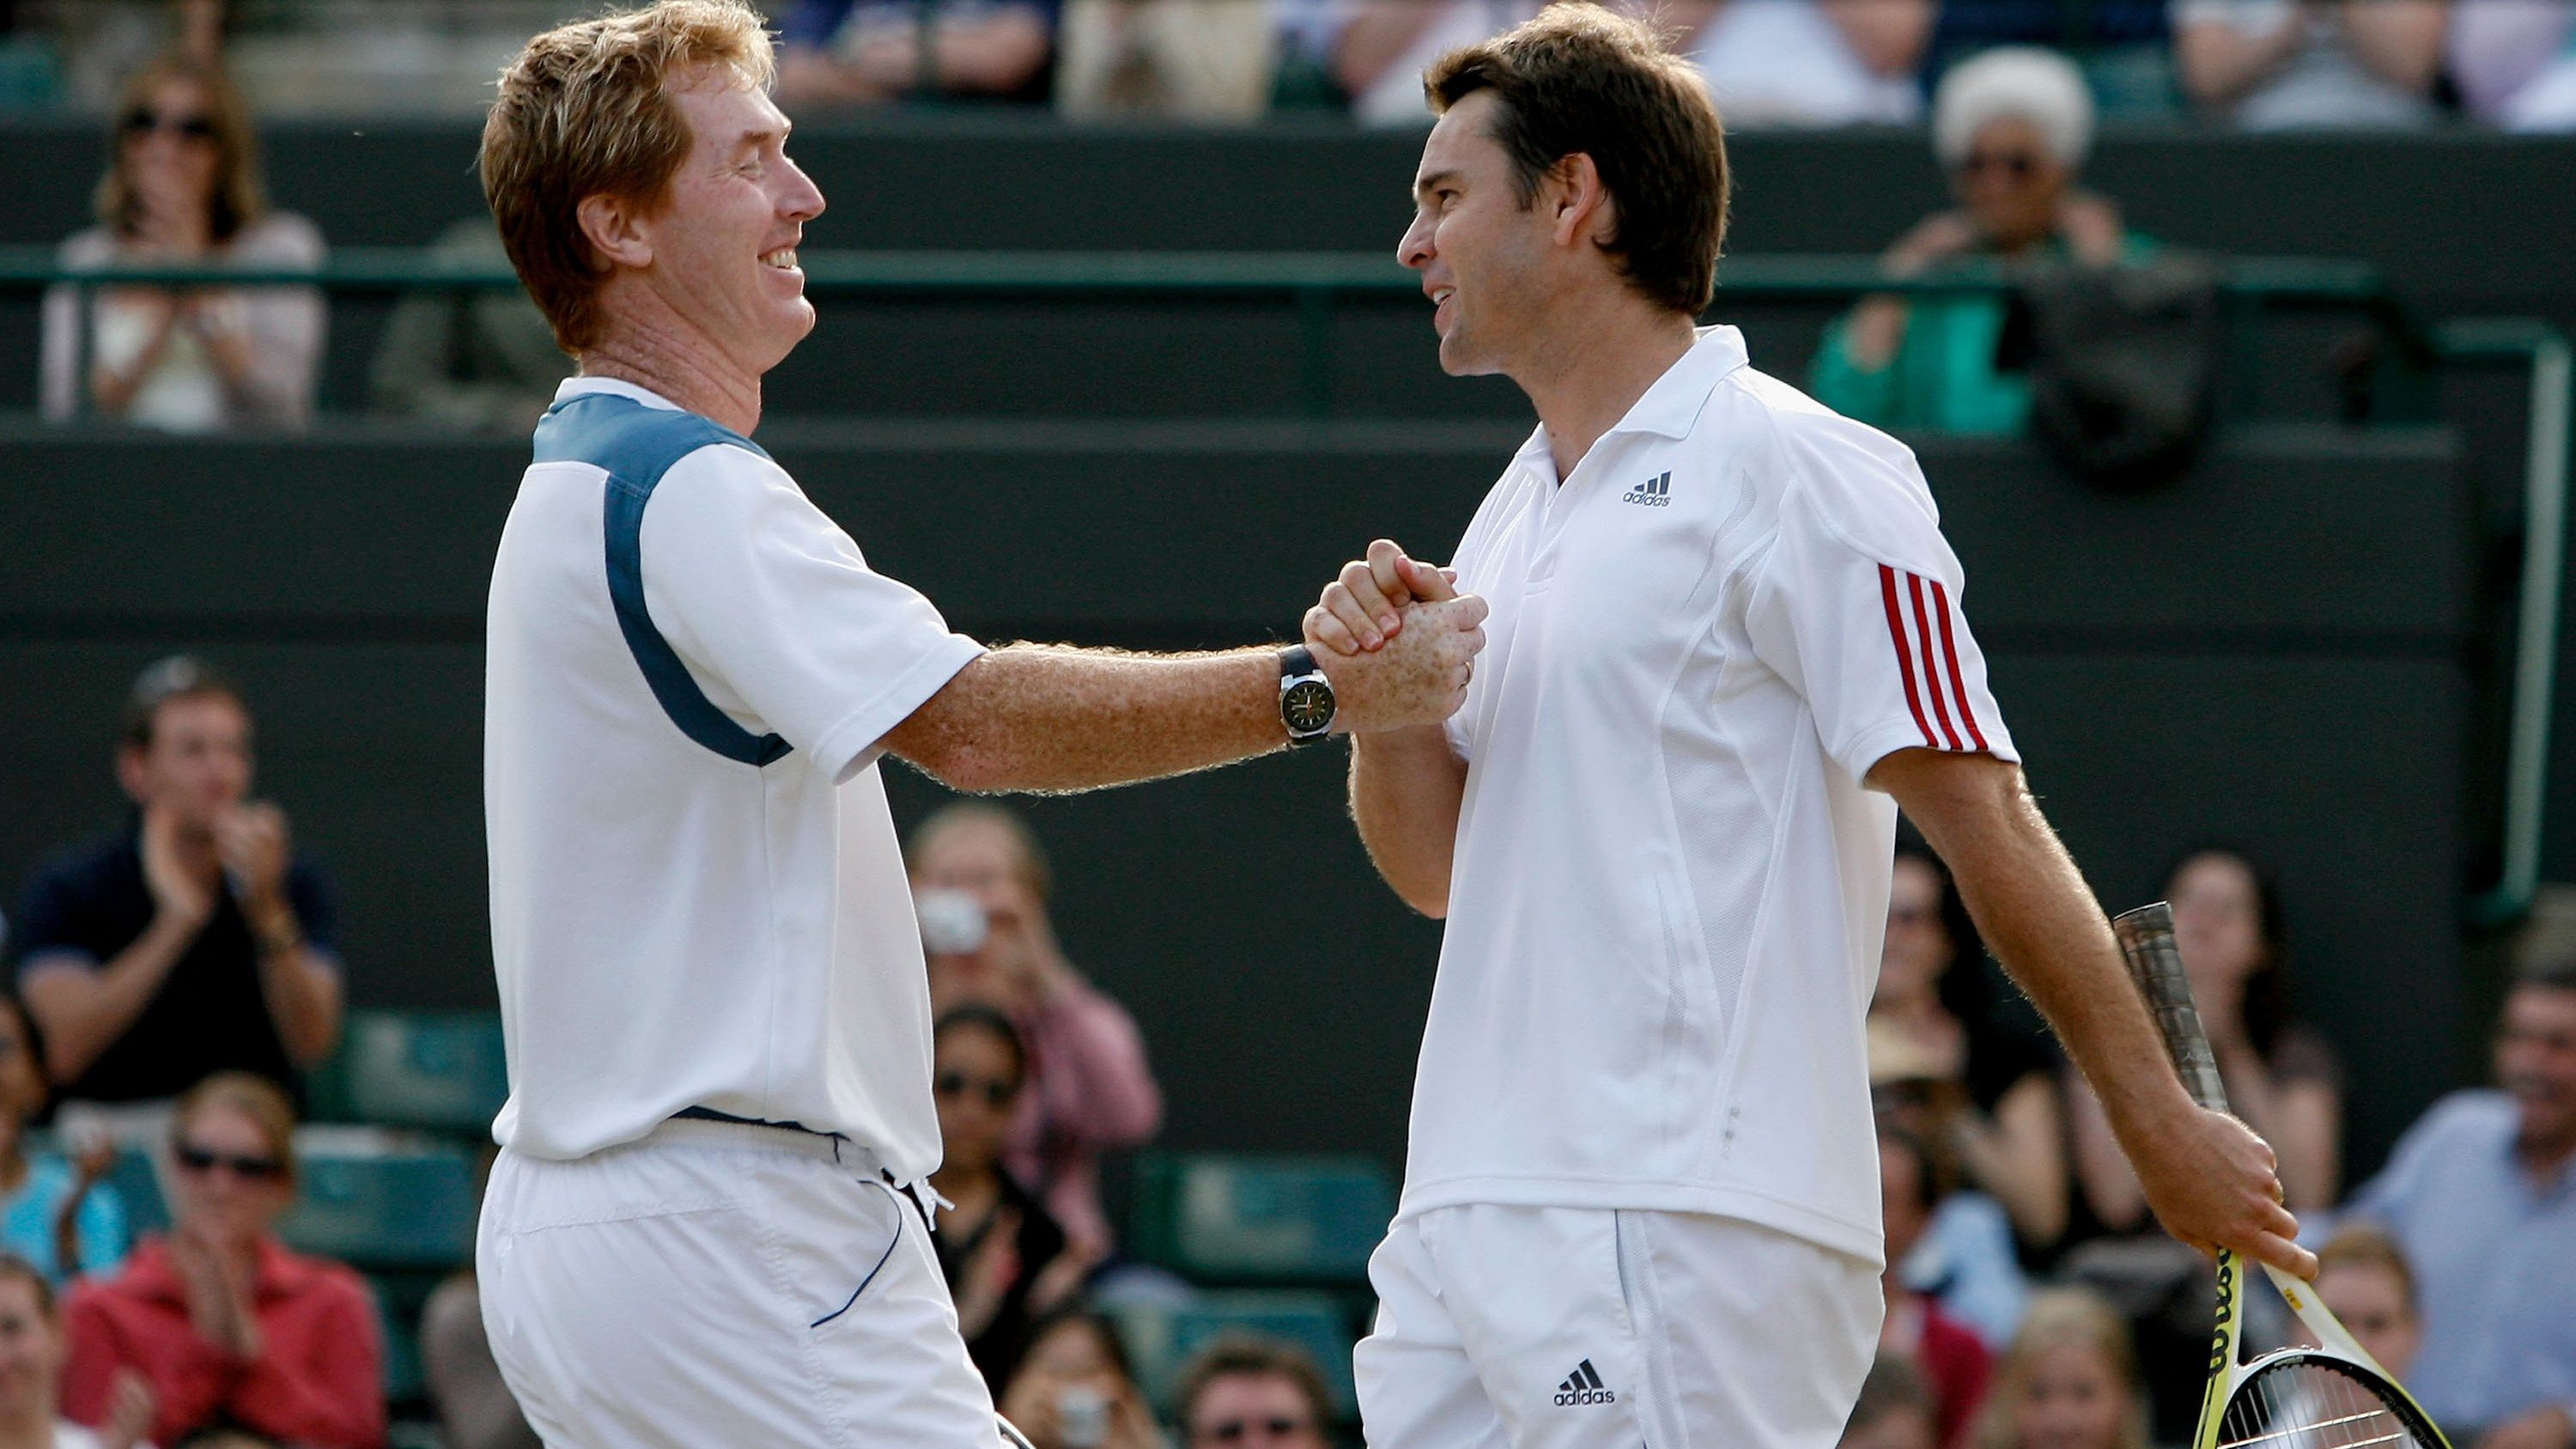 Mark Woodforde and Todd Woddbridge come together after a Wimbledon victory.